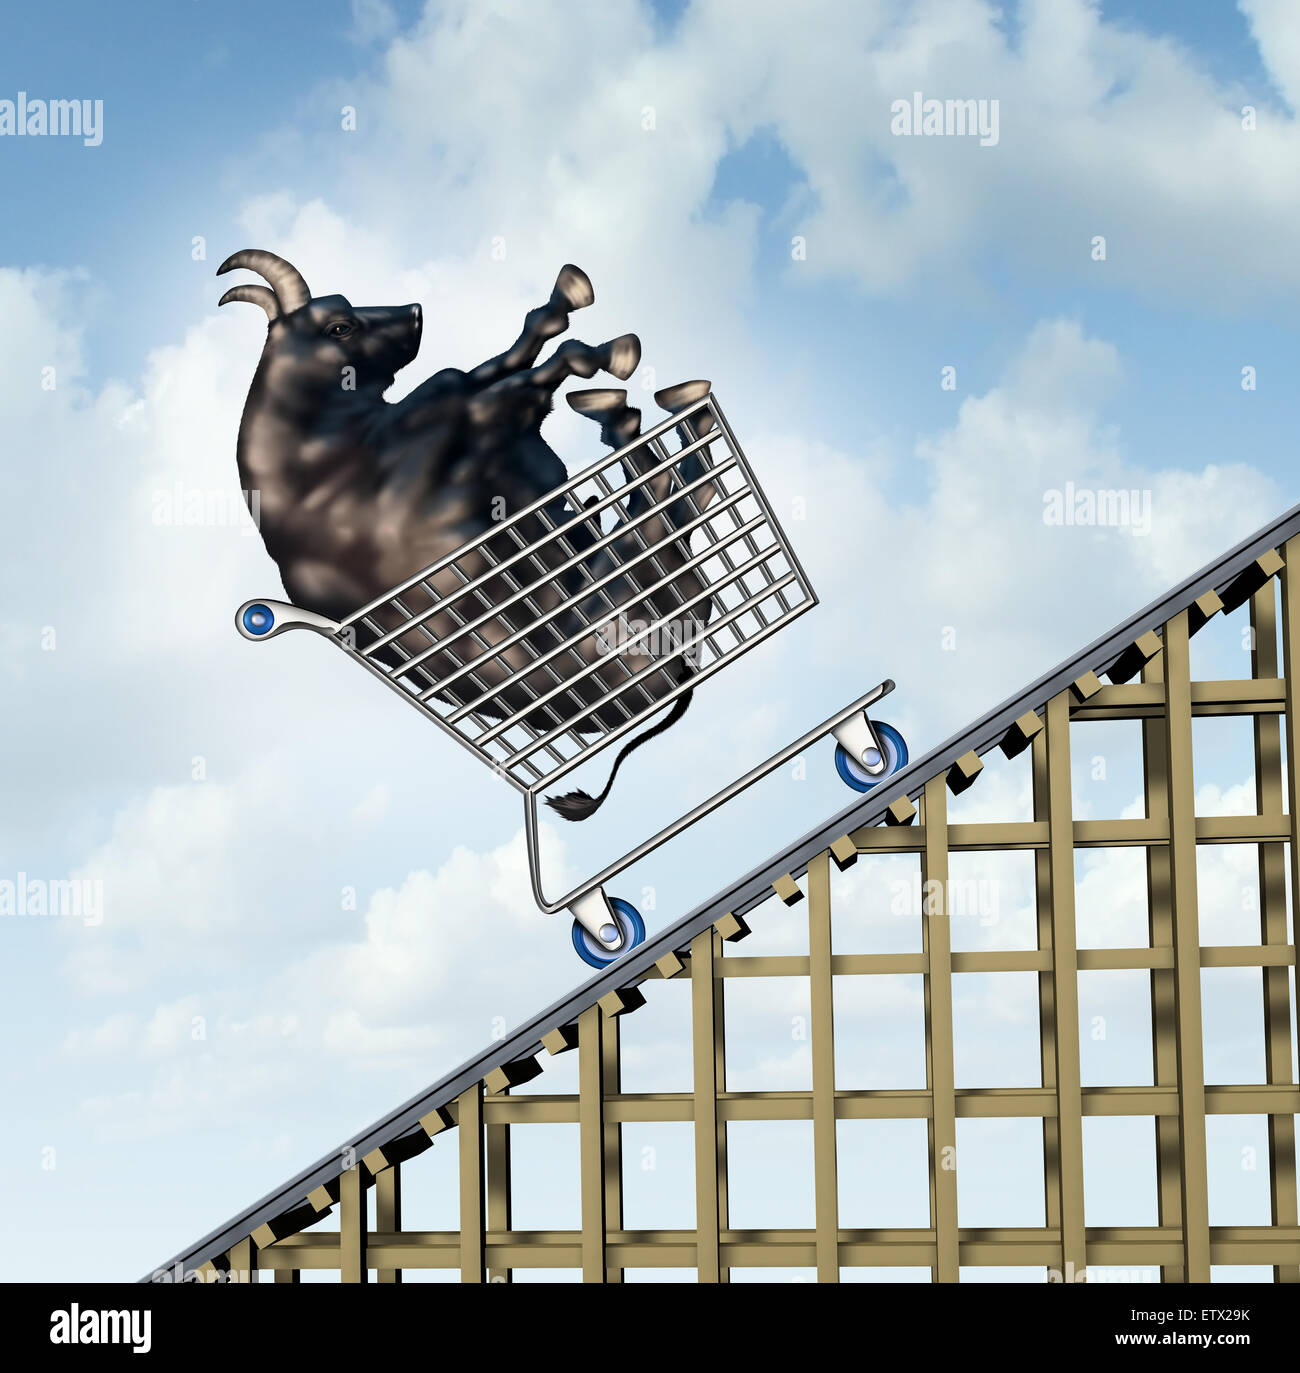 Stock market rise financial success concept as a bull in a shopping cart going up on a roller coaster structure - Stock Image